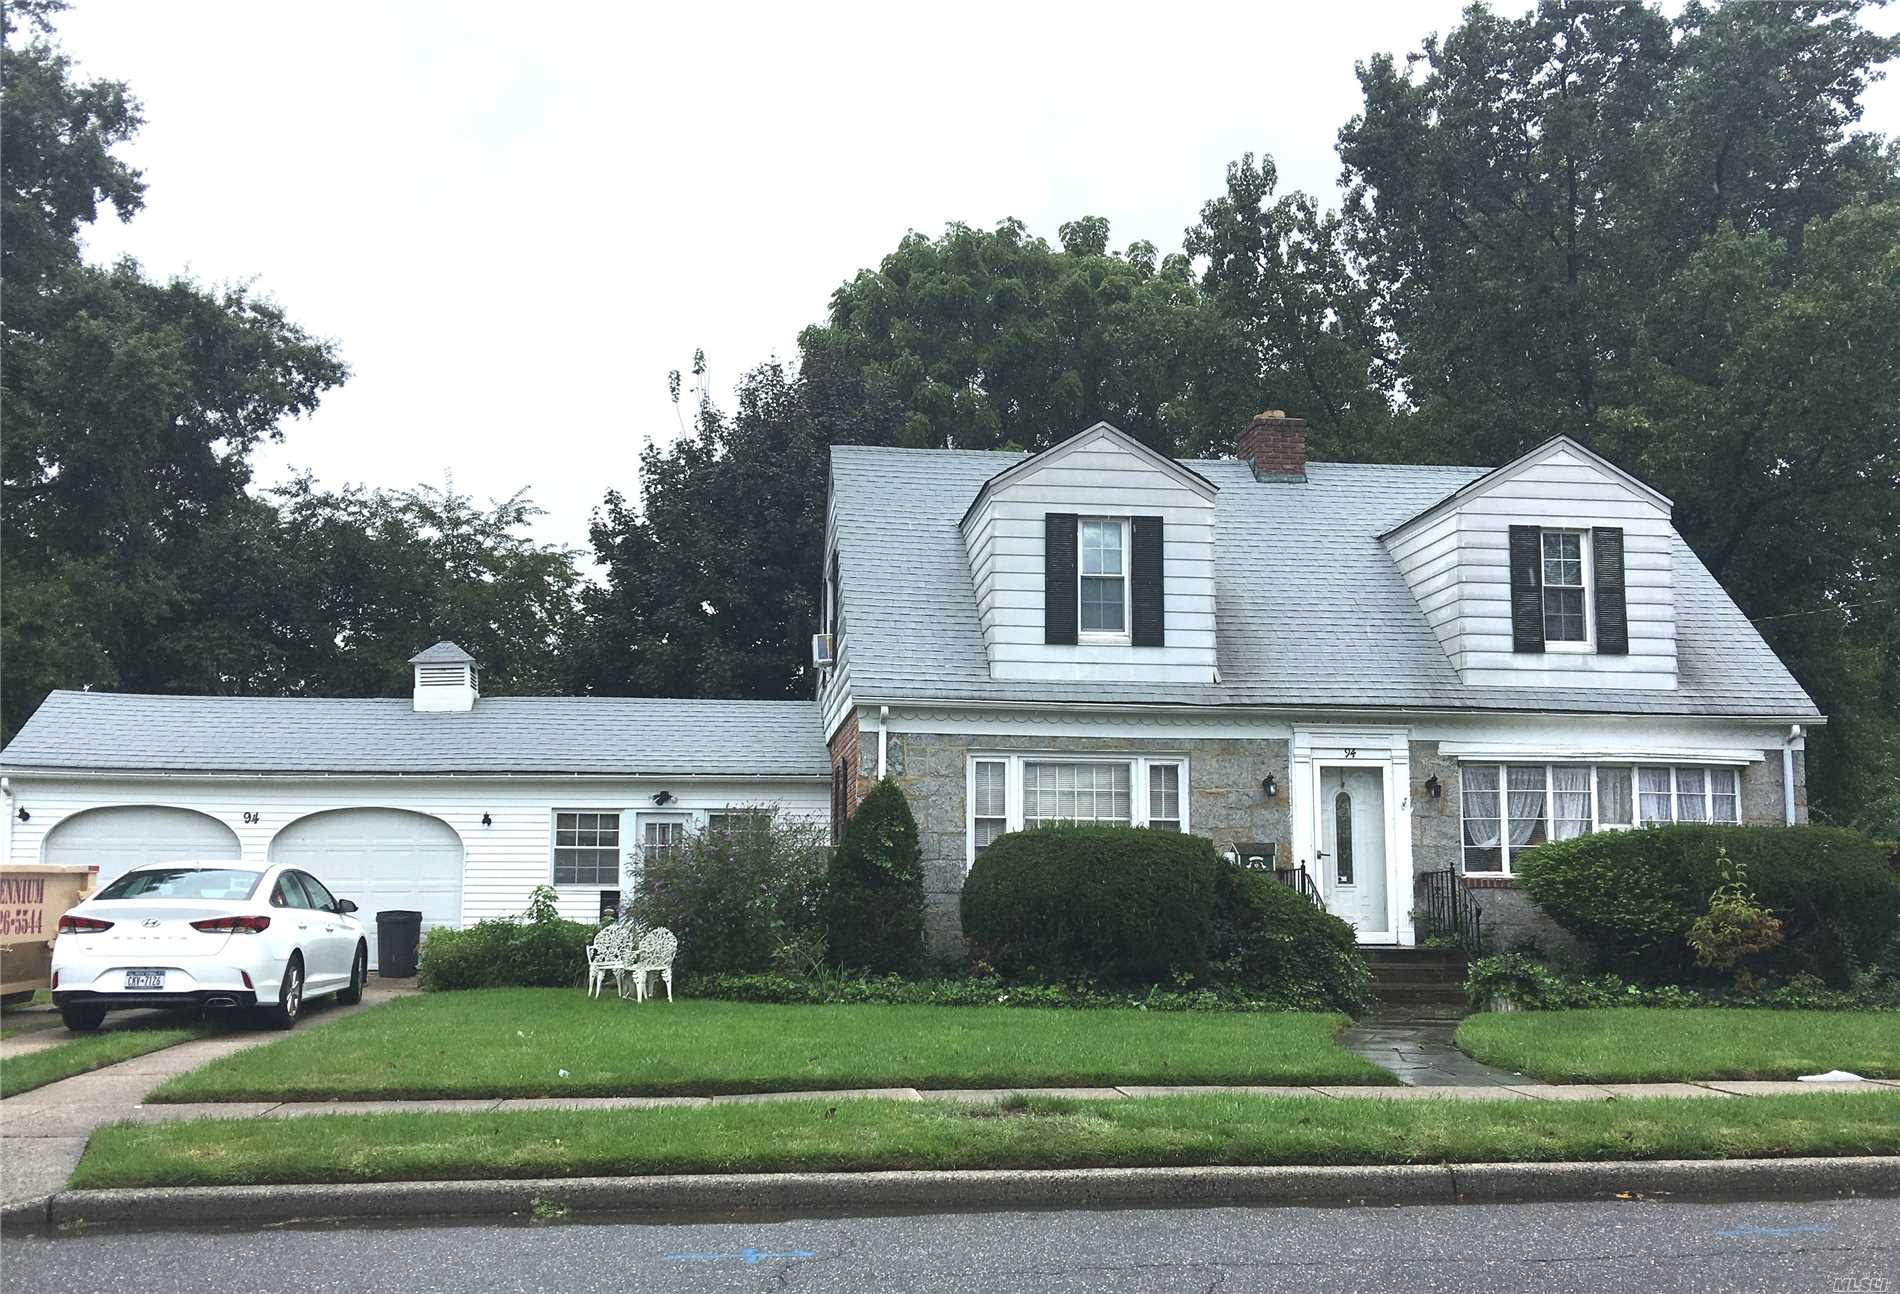 Photo of home for sale at 94 East St, Hicksville NY